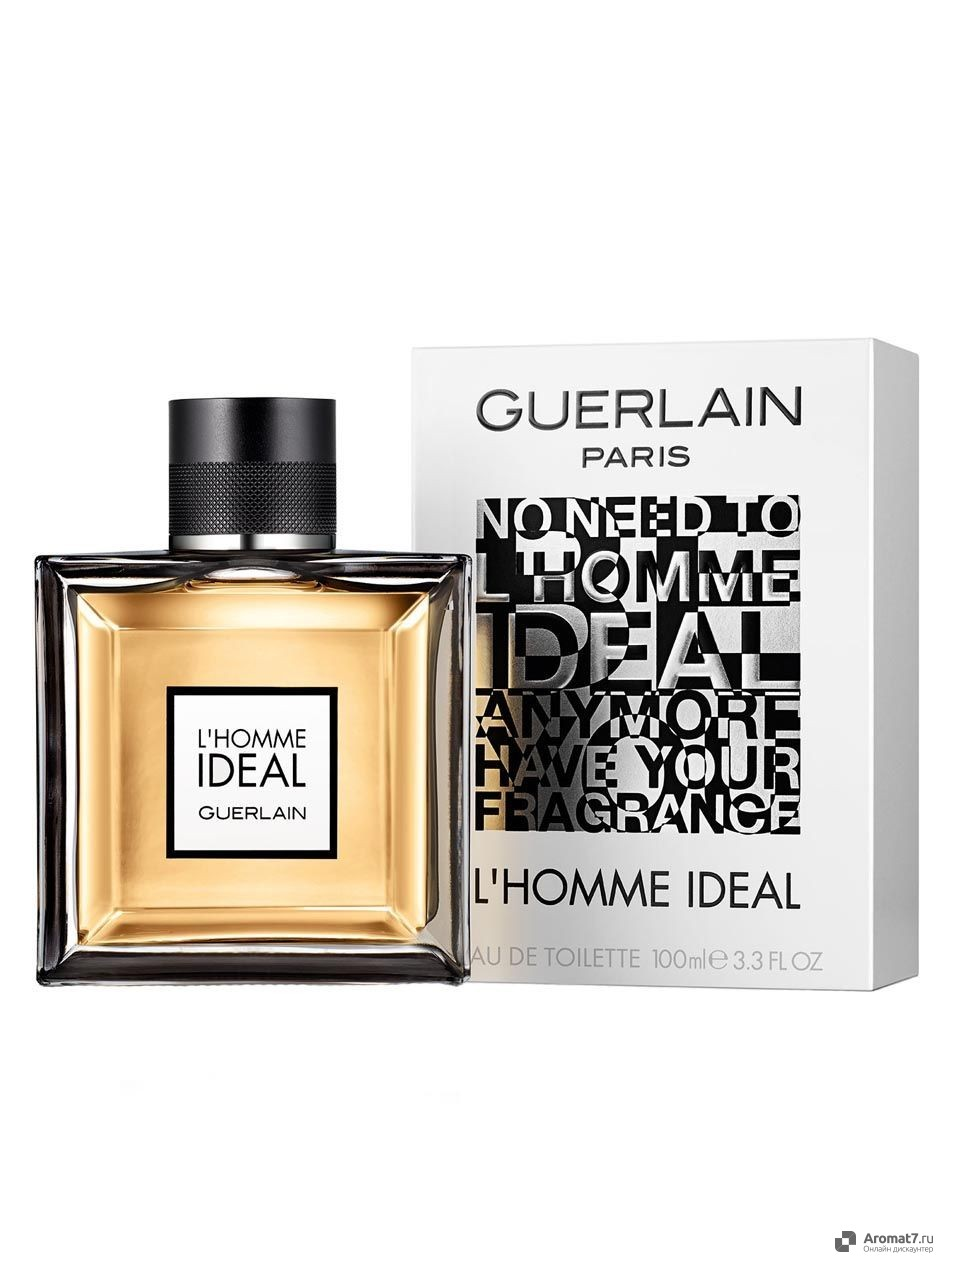 Guerlain - L'Homme Ideal. M-100